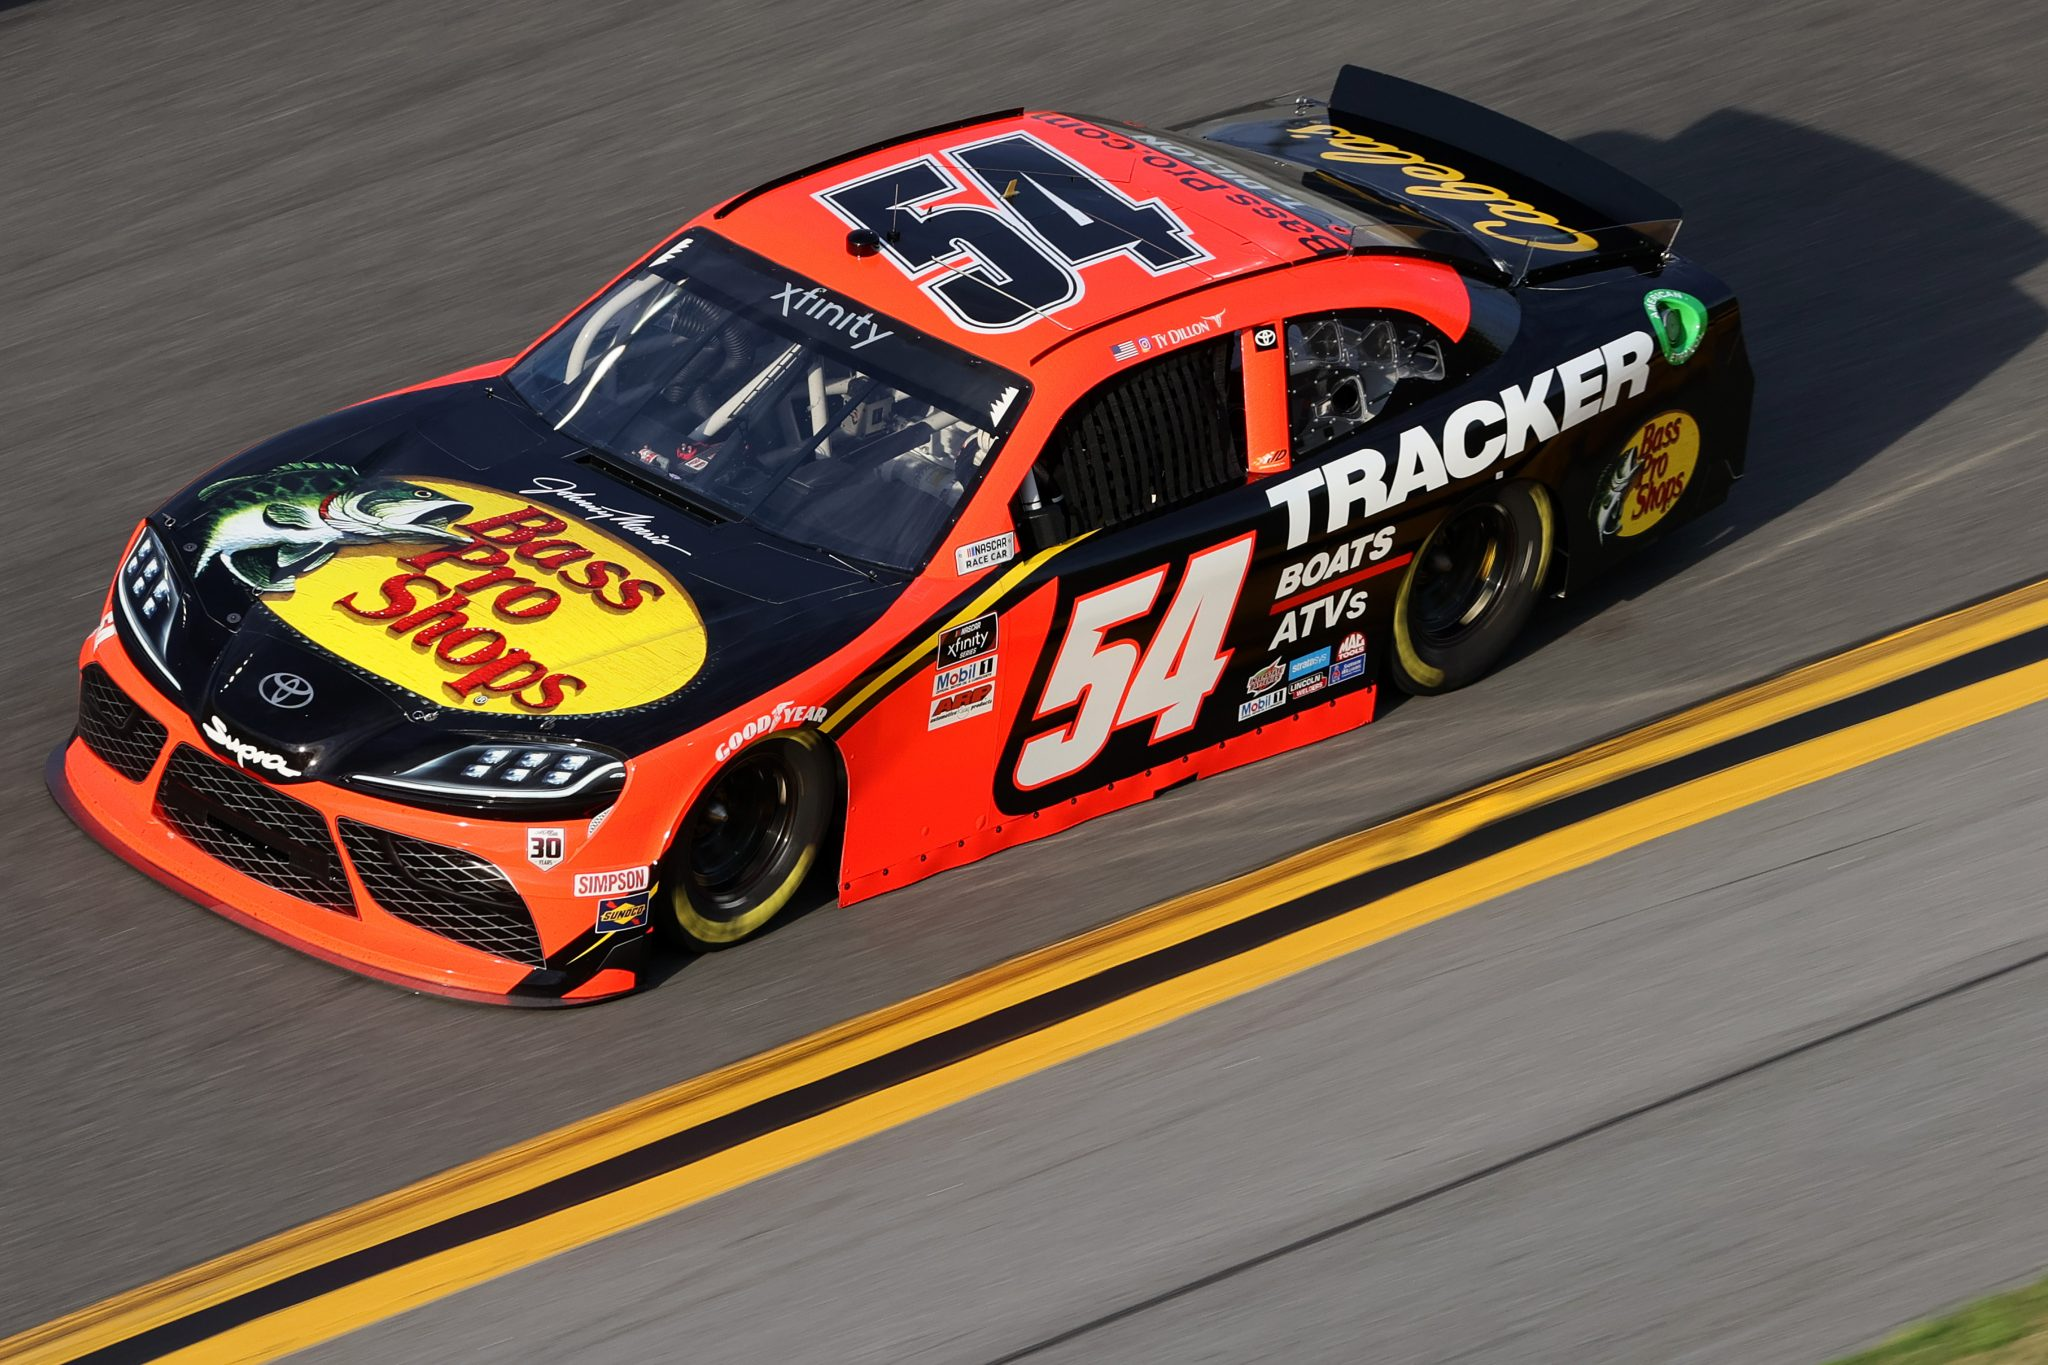 DAYTONA BEACH, FLORIDA - FEBRUARY 12: Ty Dillon, driver of the #54 Bass Pro Shops Toyota, practices for the NASCAR Xfinity Series Beef. It's What's For Dinner. 300 at Daytona International Speedway on February 12, 2021 in Daytona Beach, Florida. (Photo by James Gilbert/Getty Images) | Getty Images